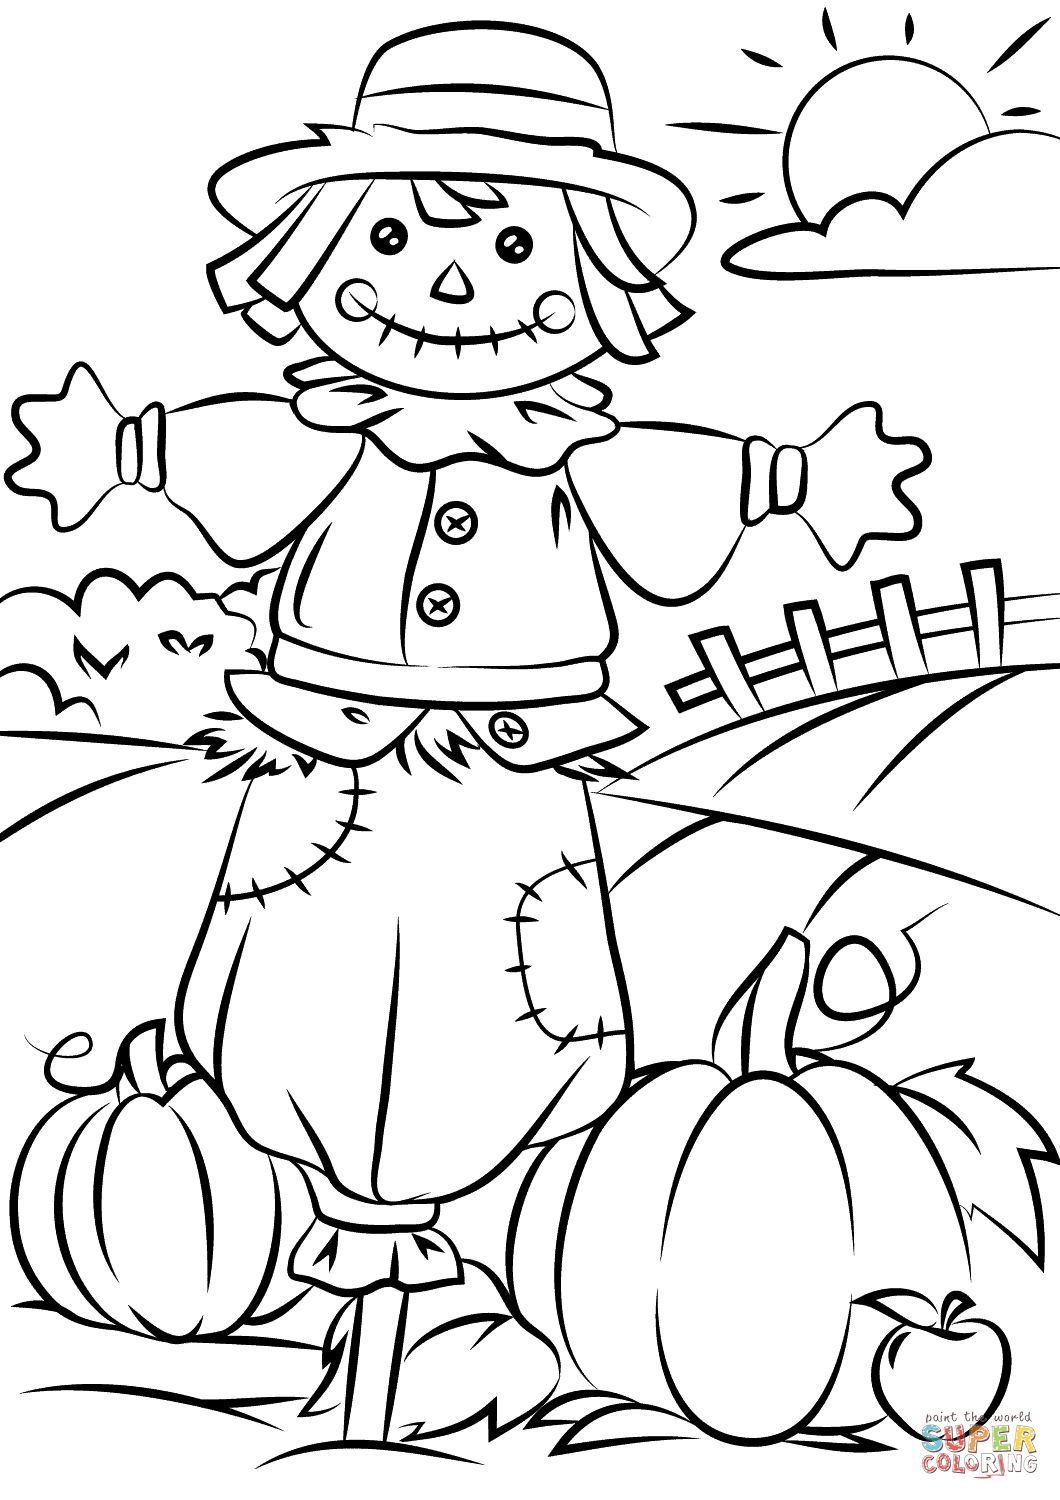 scarecrow coloring pages scarecrow coloring page at getcoloringscom free coloring scarecrow pages